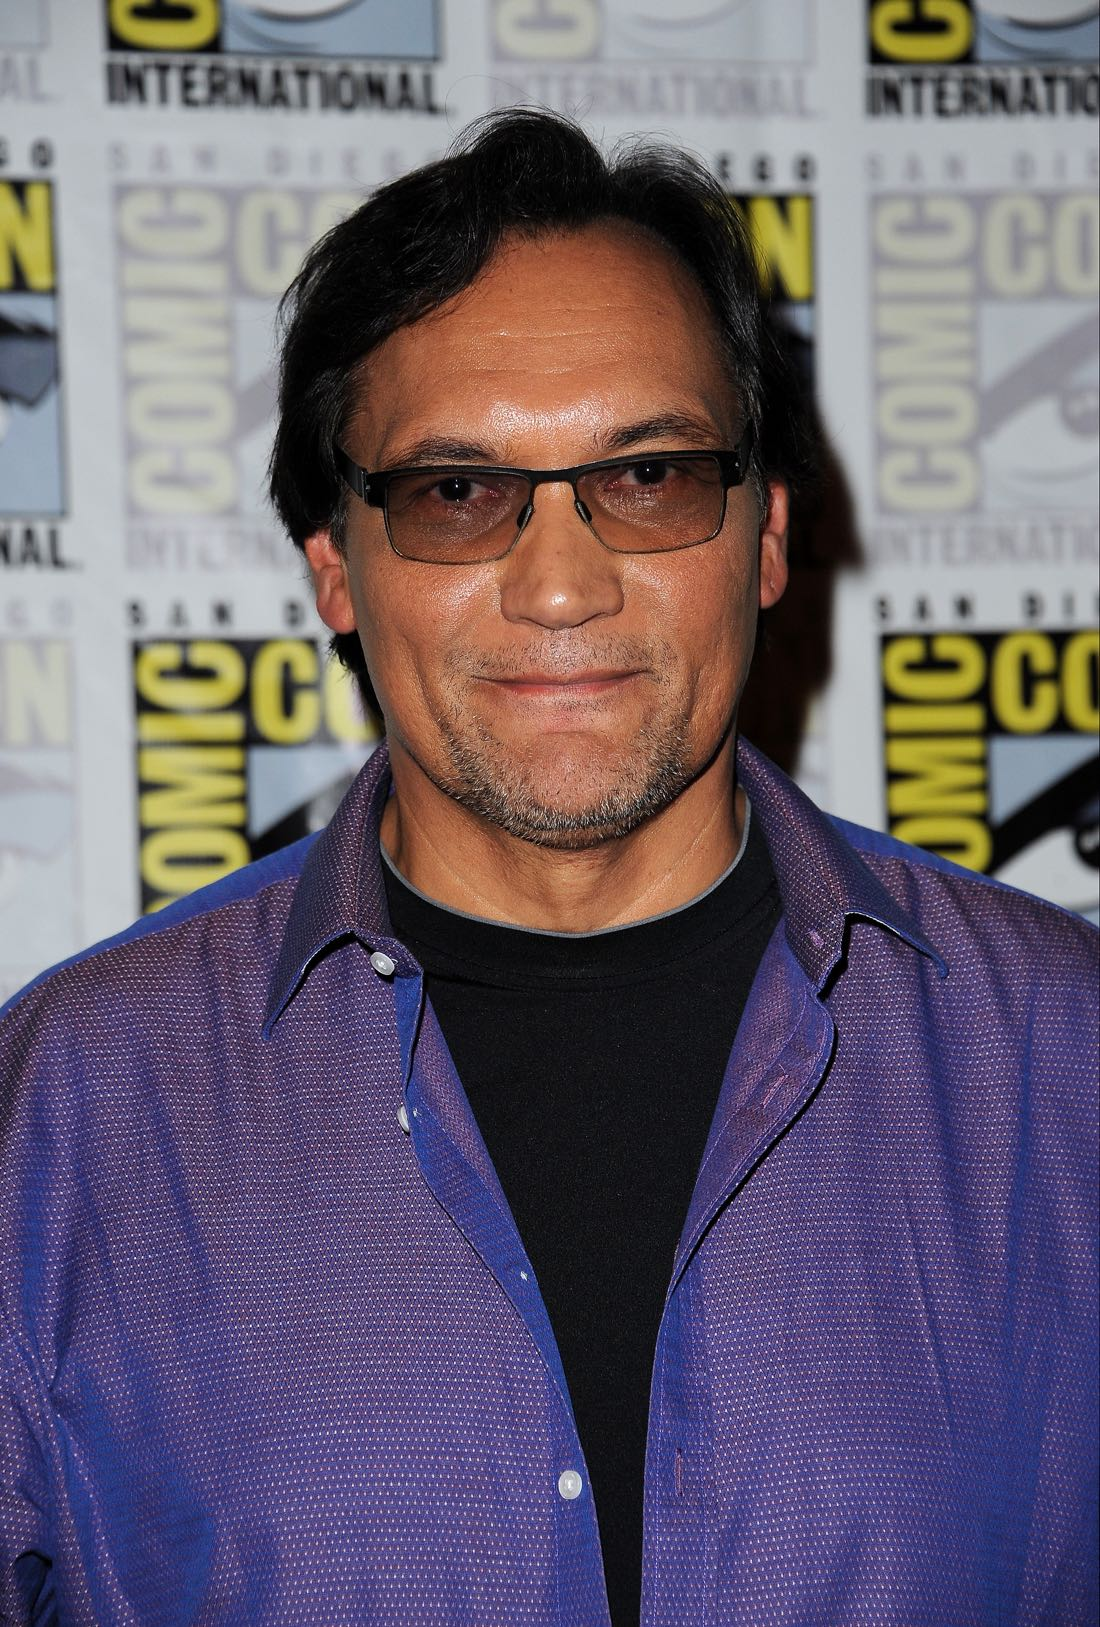 FOX FANFARE AT SAN DIEGO COMIC-CON © 2016: 24:LEGACY cast member Jimmy Smits during the 24:LEGACY press room on Sunday, July 24 at the FOX FANFARE AT SAN DIEGO COMIC-CON © 2016. CR: Scott Kirkland/FOX © 2016 FOX BROADCASTING